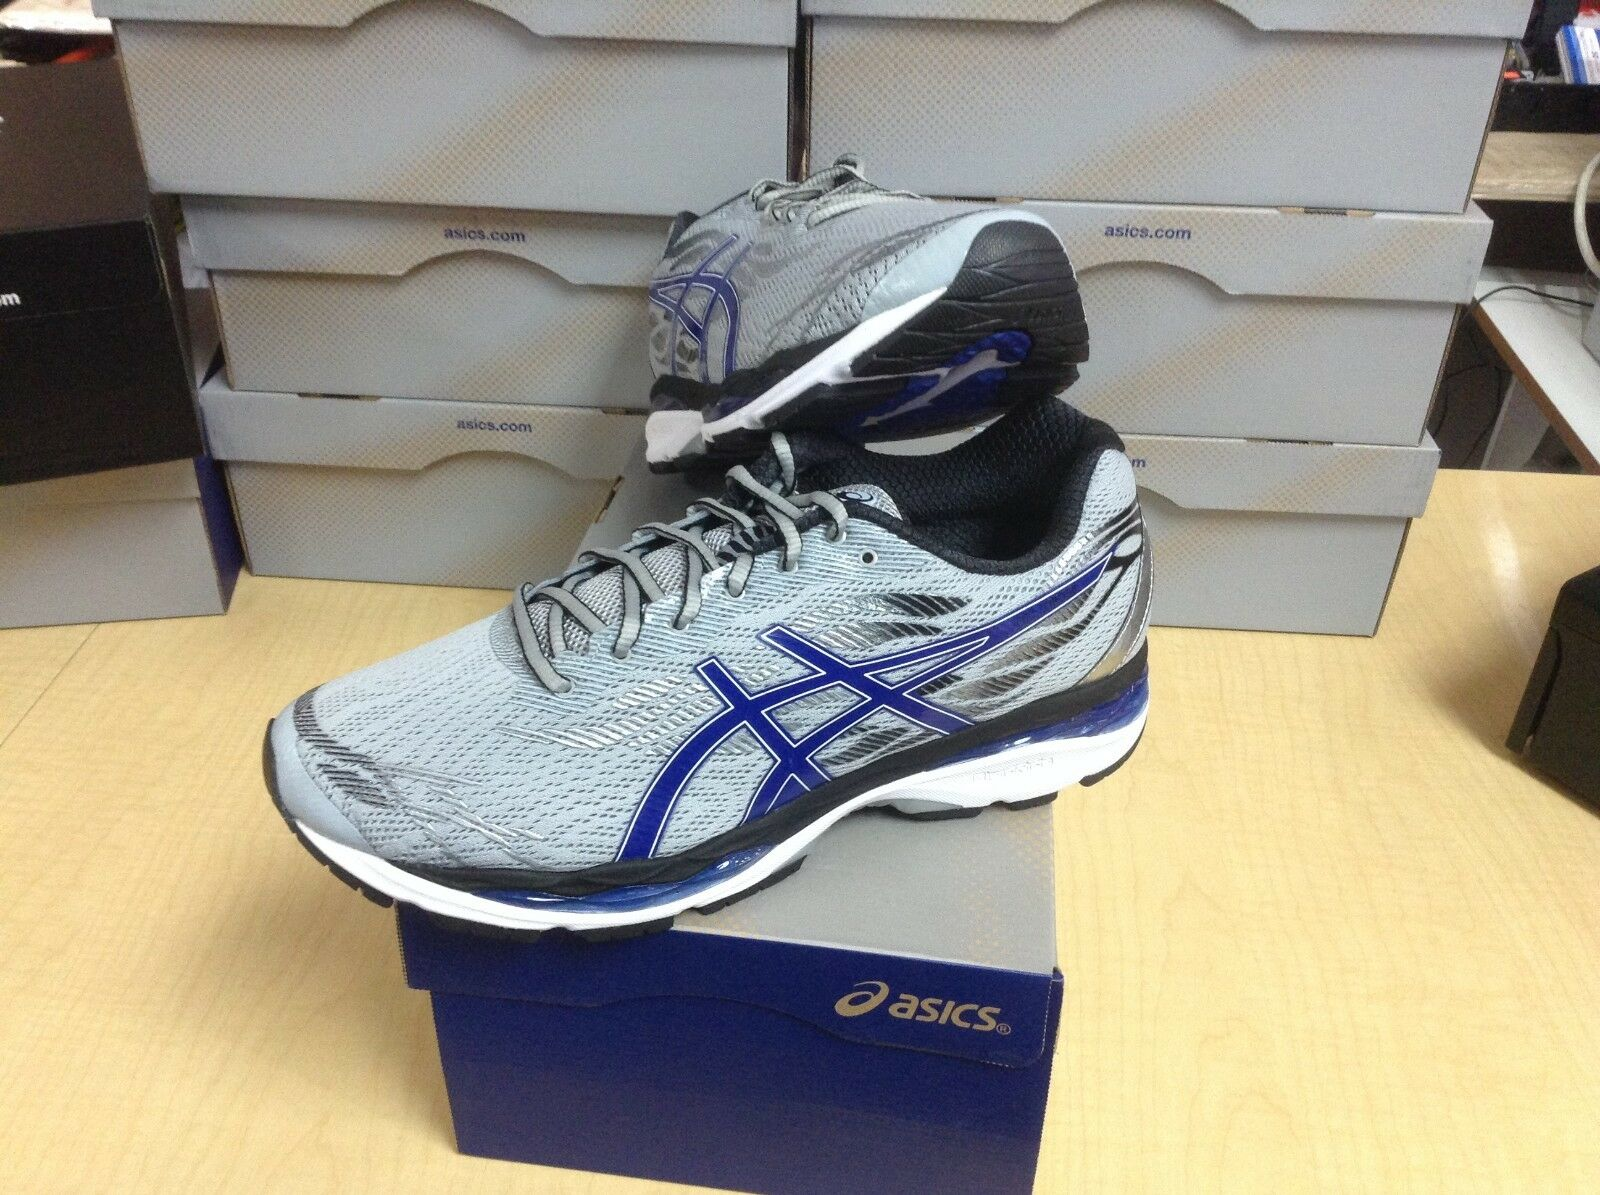 MEN'S ASICS - GEL-ZIRUSS (T7J1N-9645) - SIZE 8.5 - 40% OFF